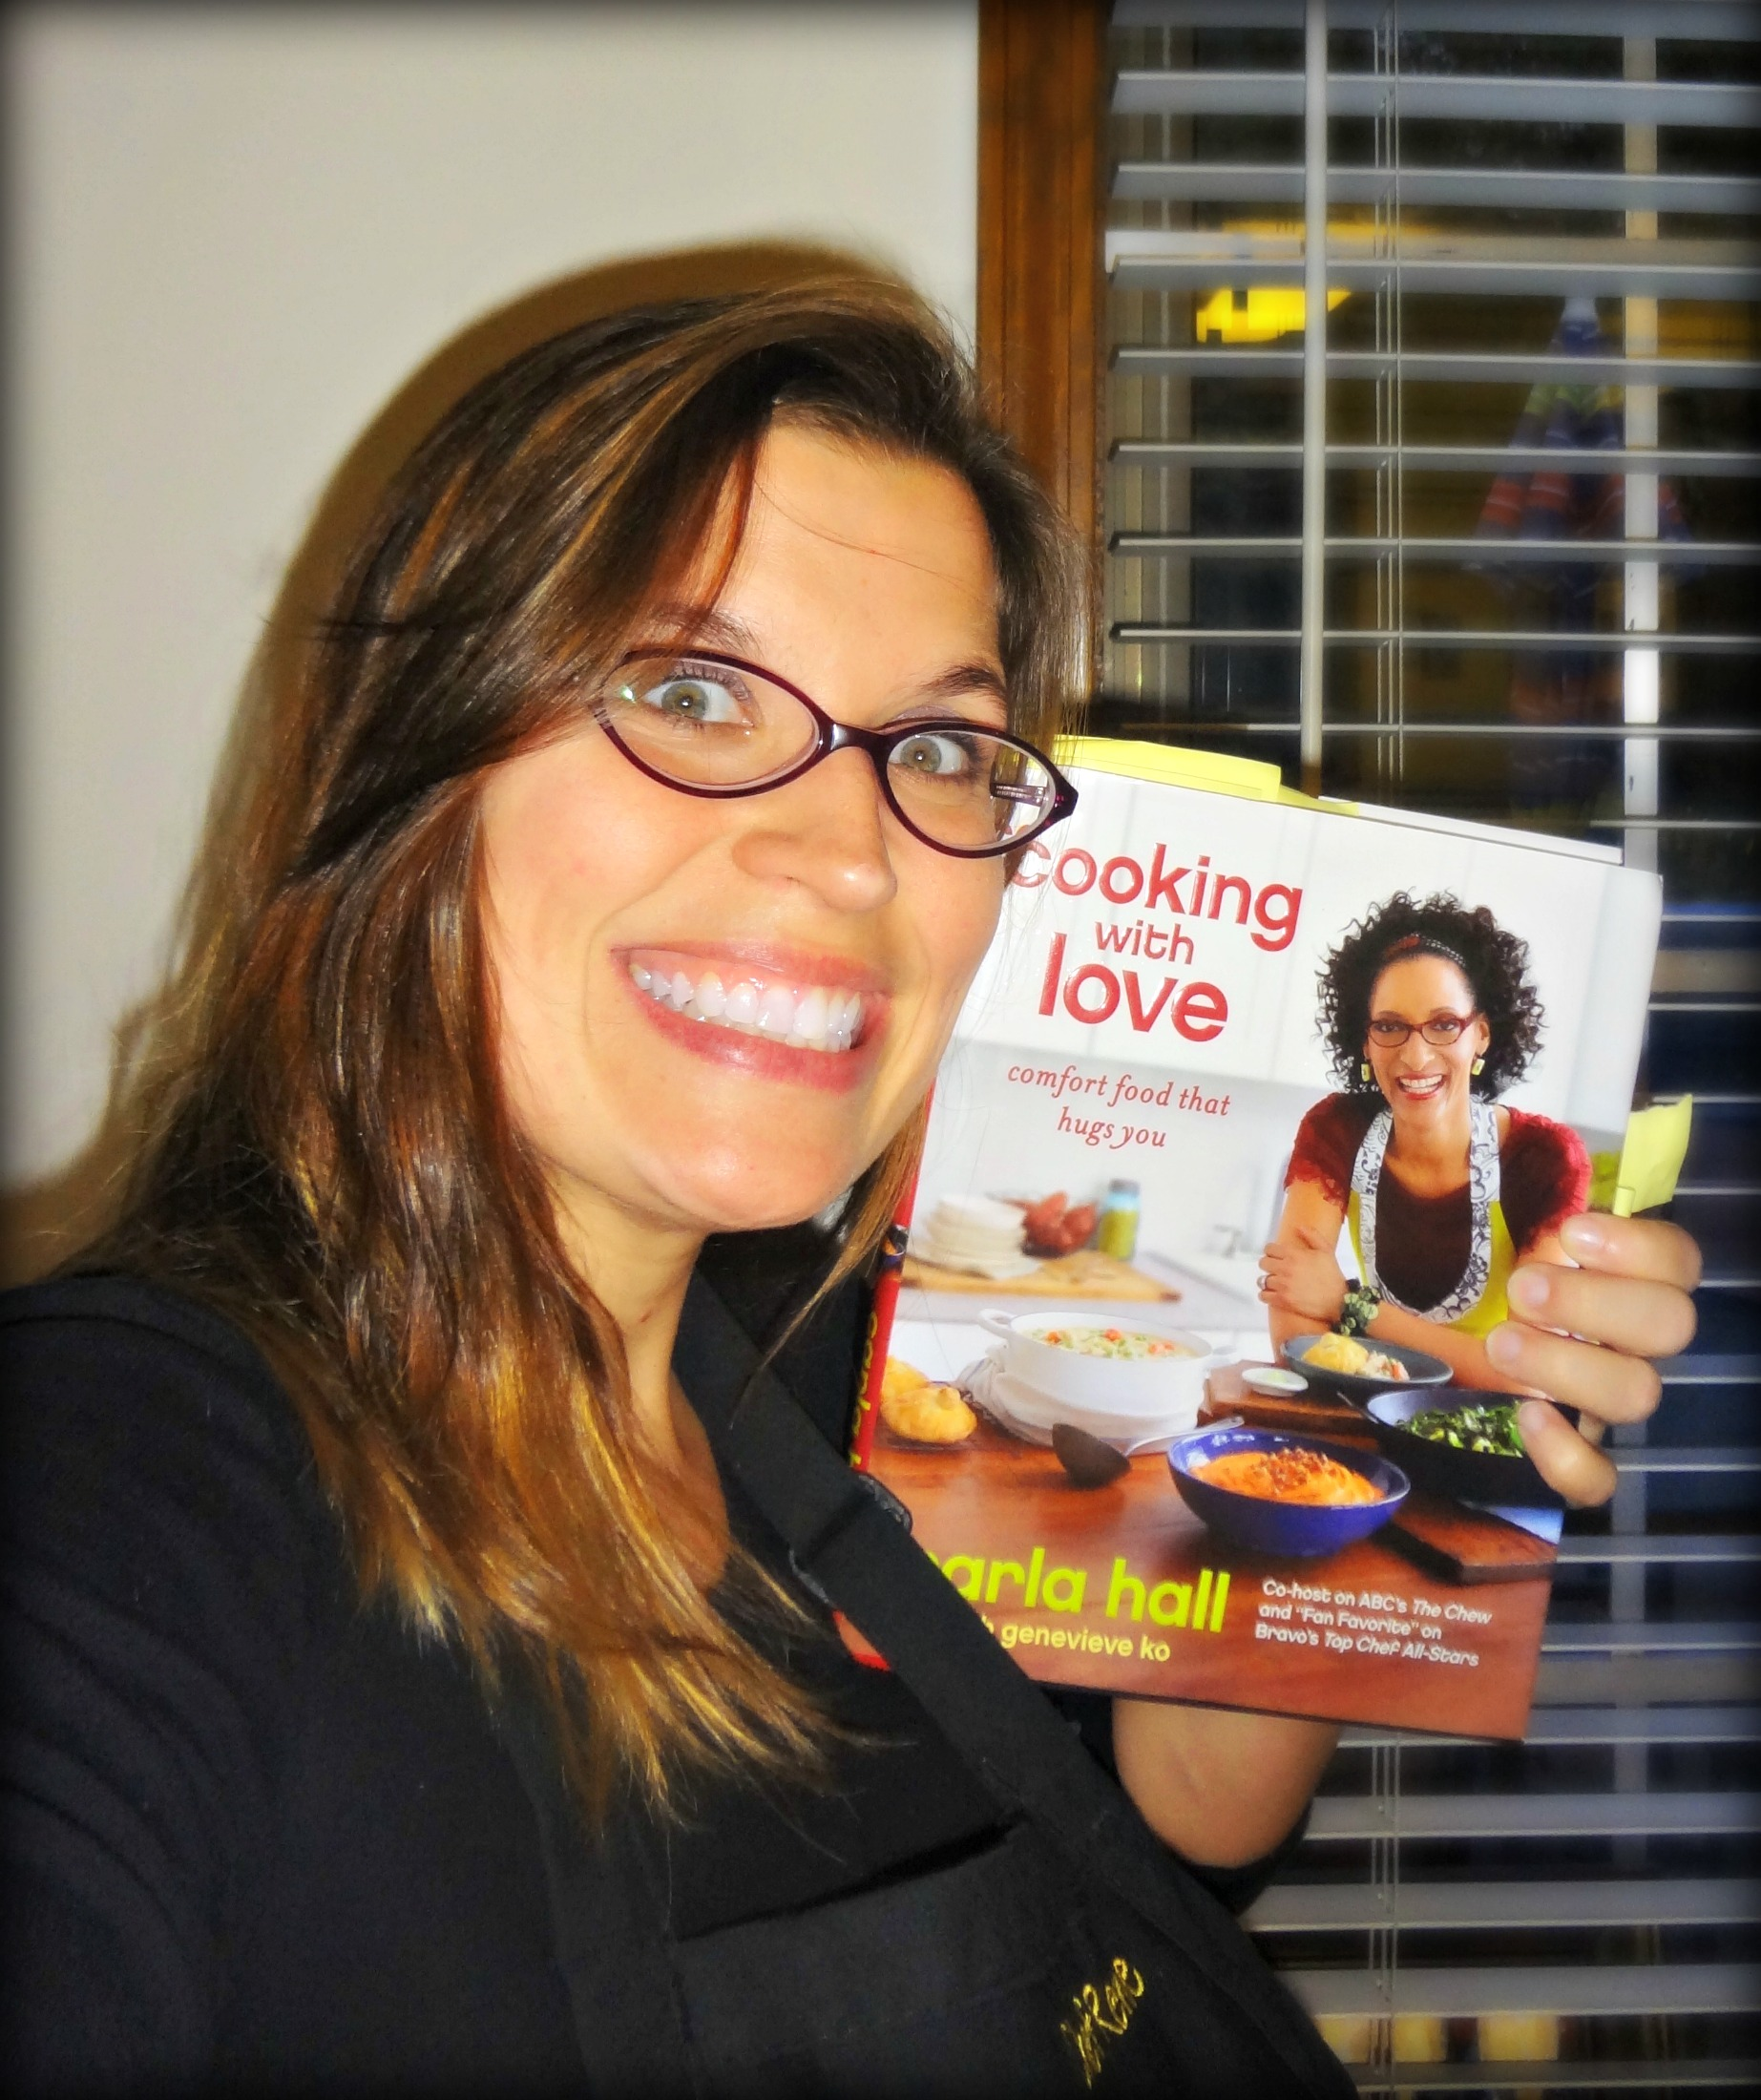 Cookbook-yay!